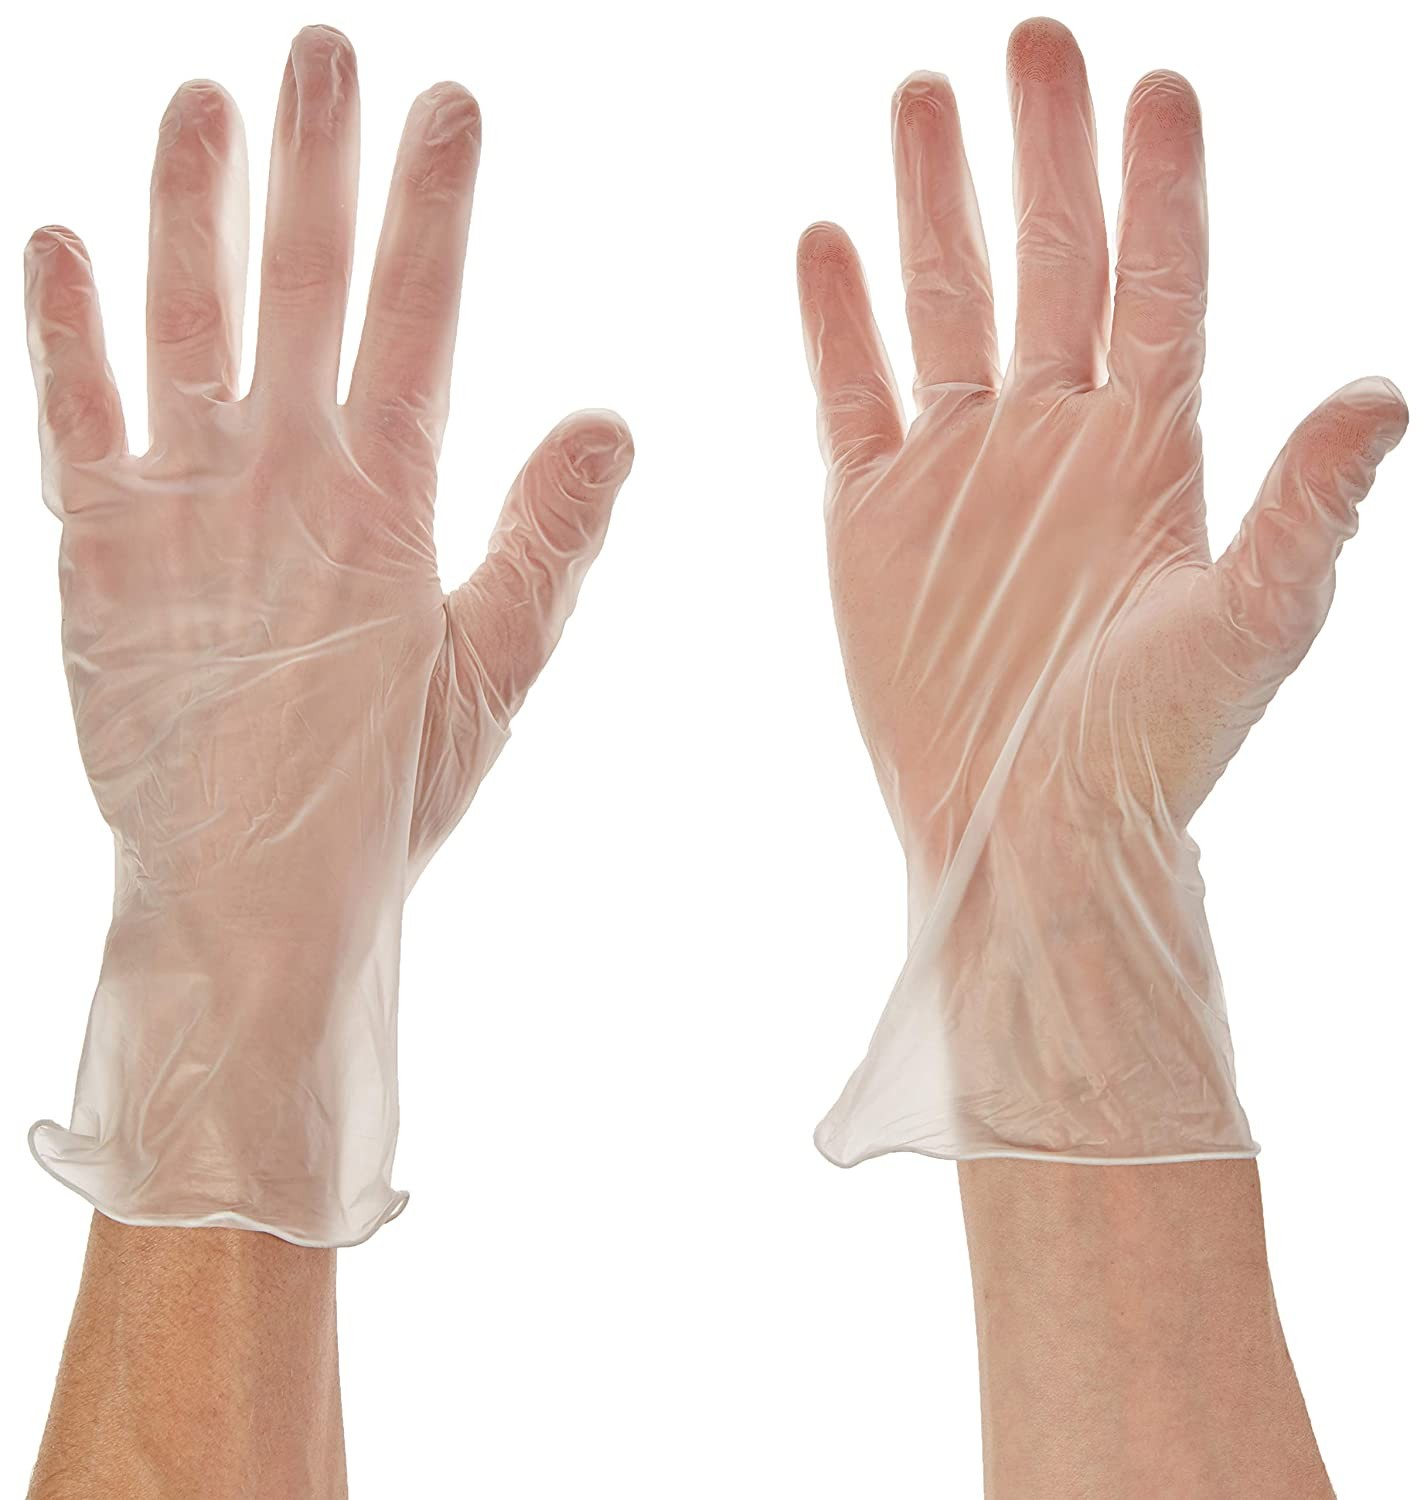 A Box Of Latex Free Gloves